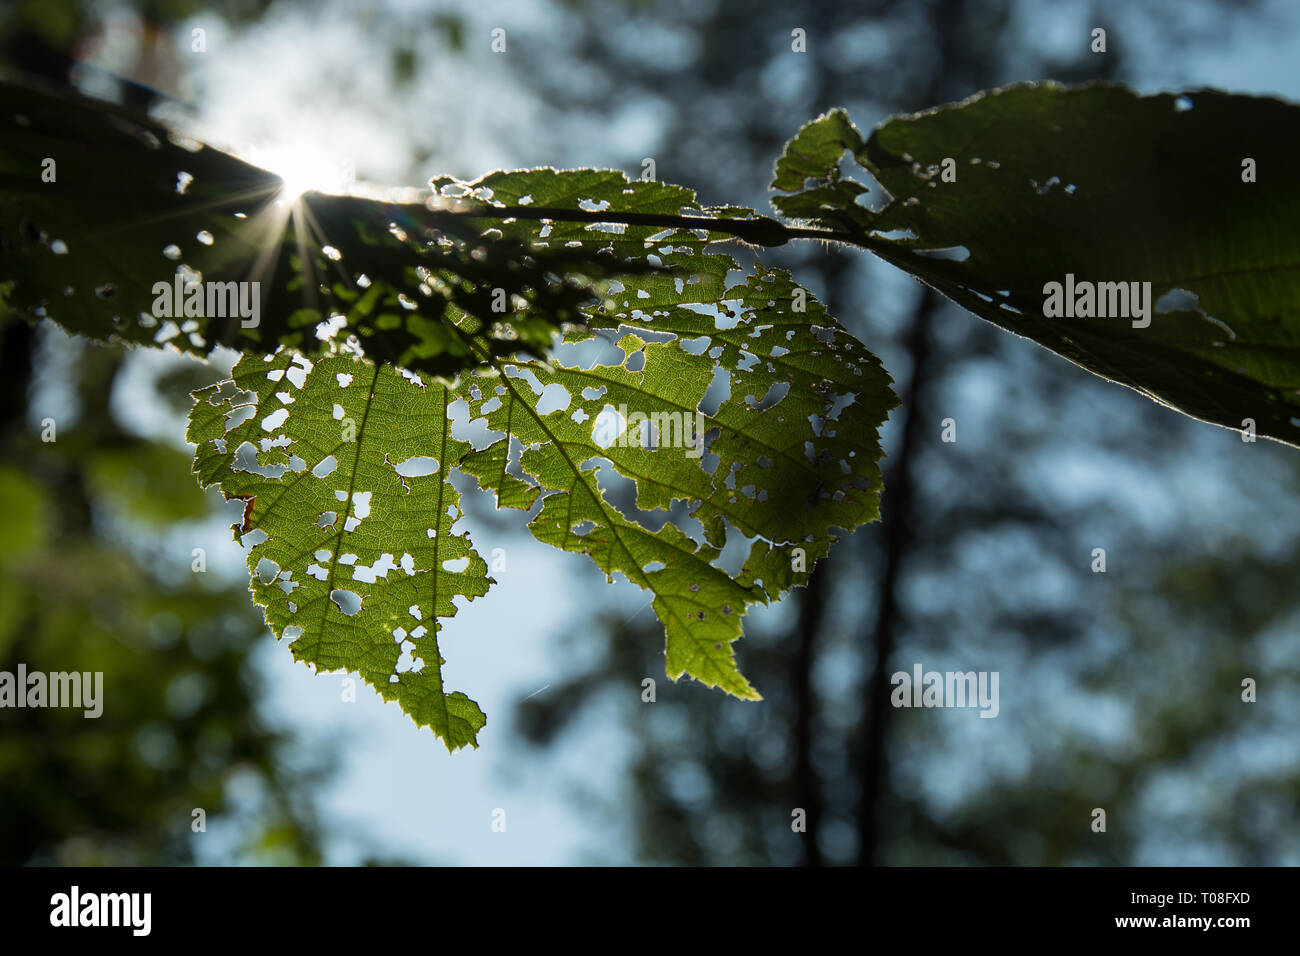 Sun rays shining through green and holey leaves on a tree - closeup Stock Photo